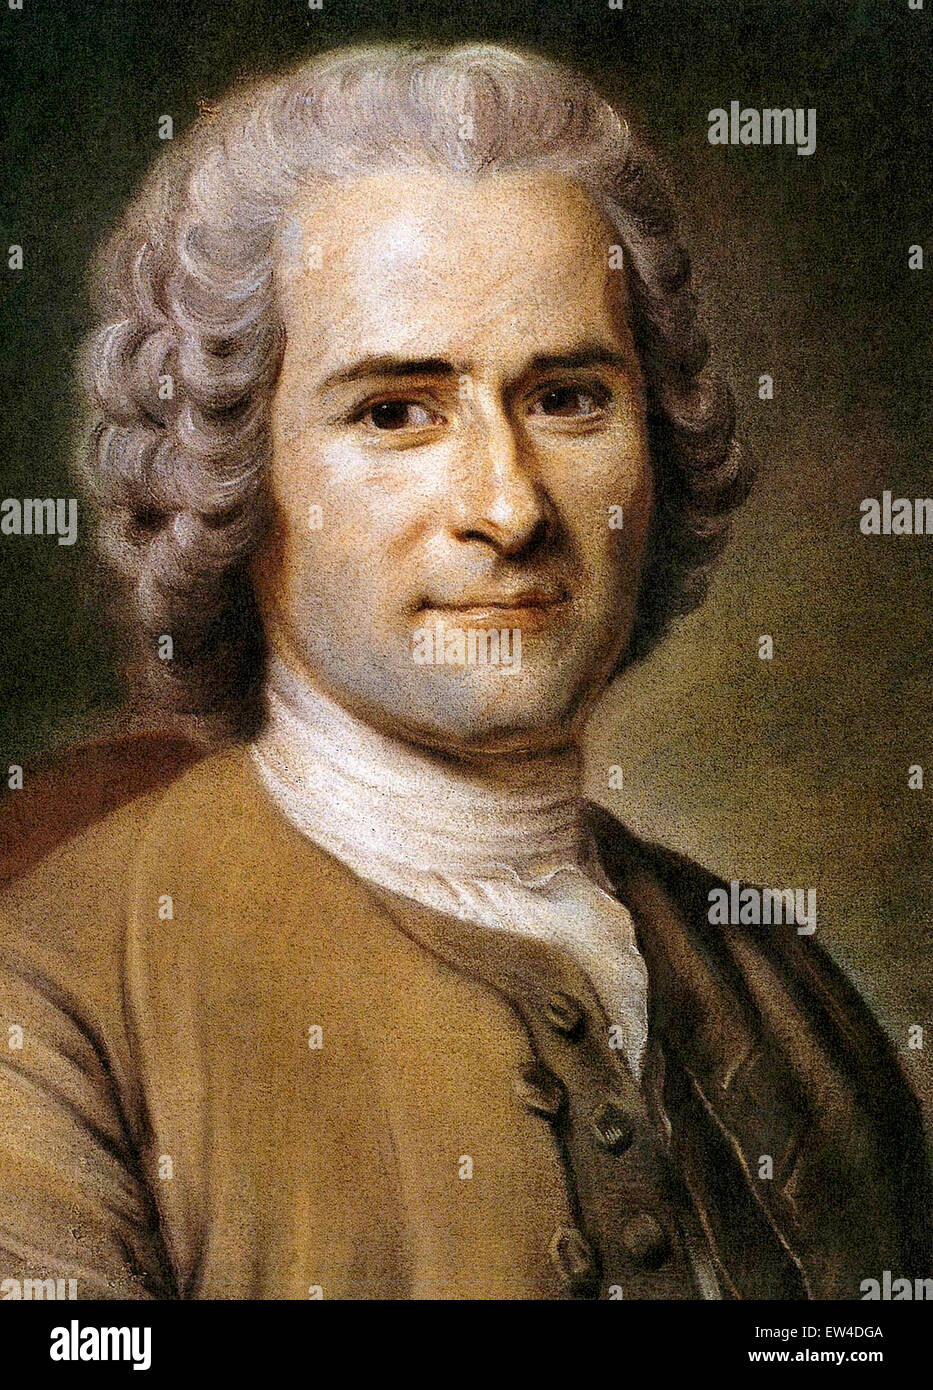 Jean-Jacques Rousseau, Genevan philosopher, writer, and composer of the 18th century. - Stock Image